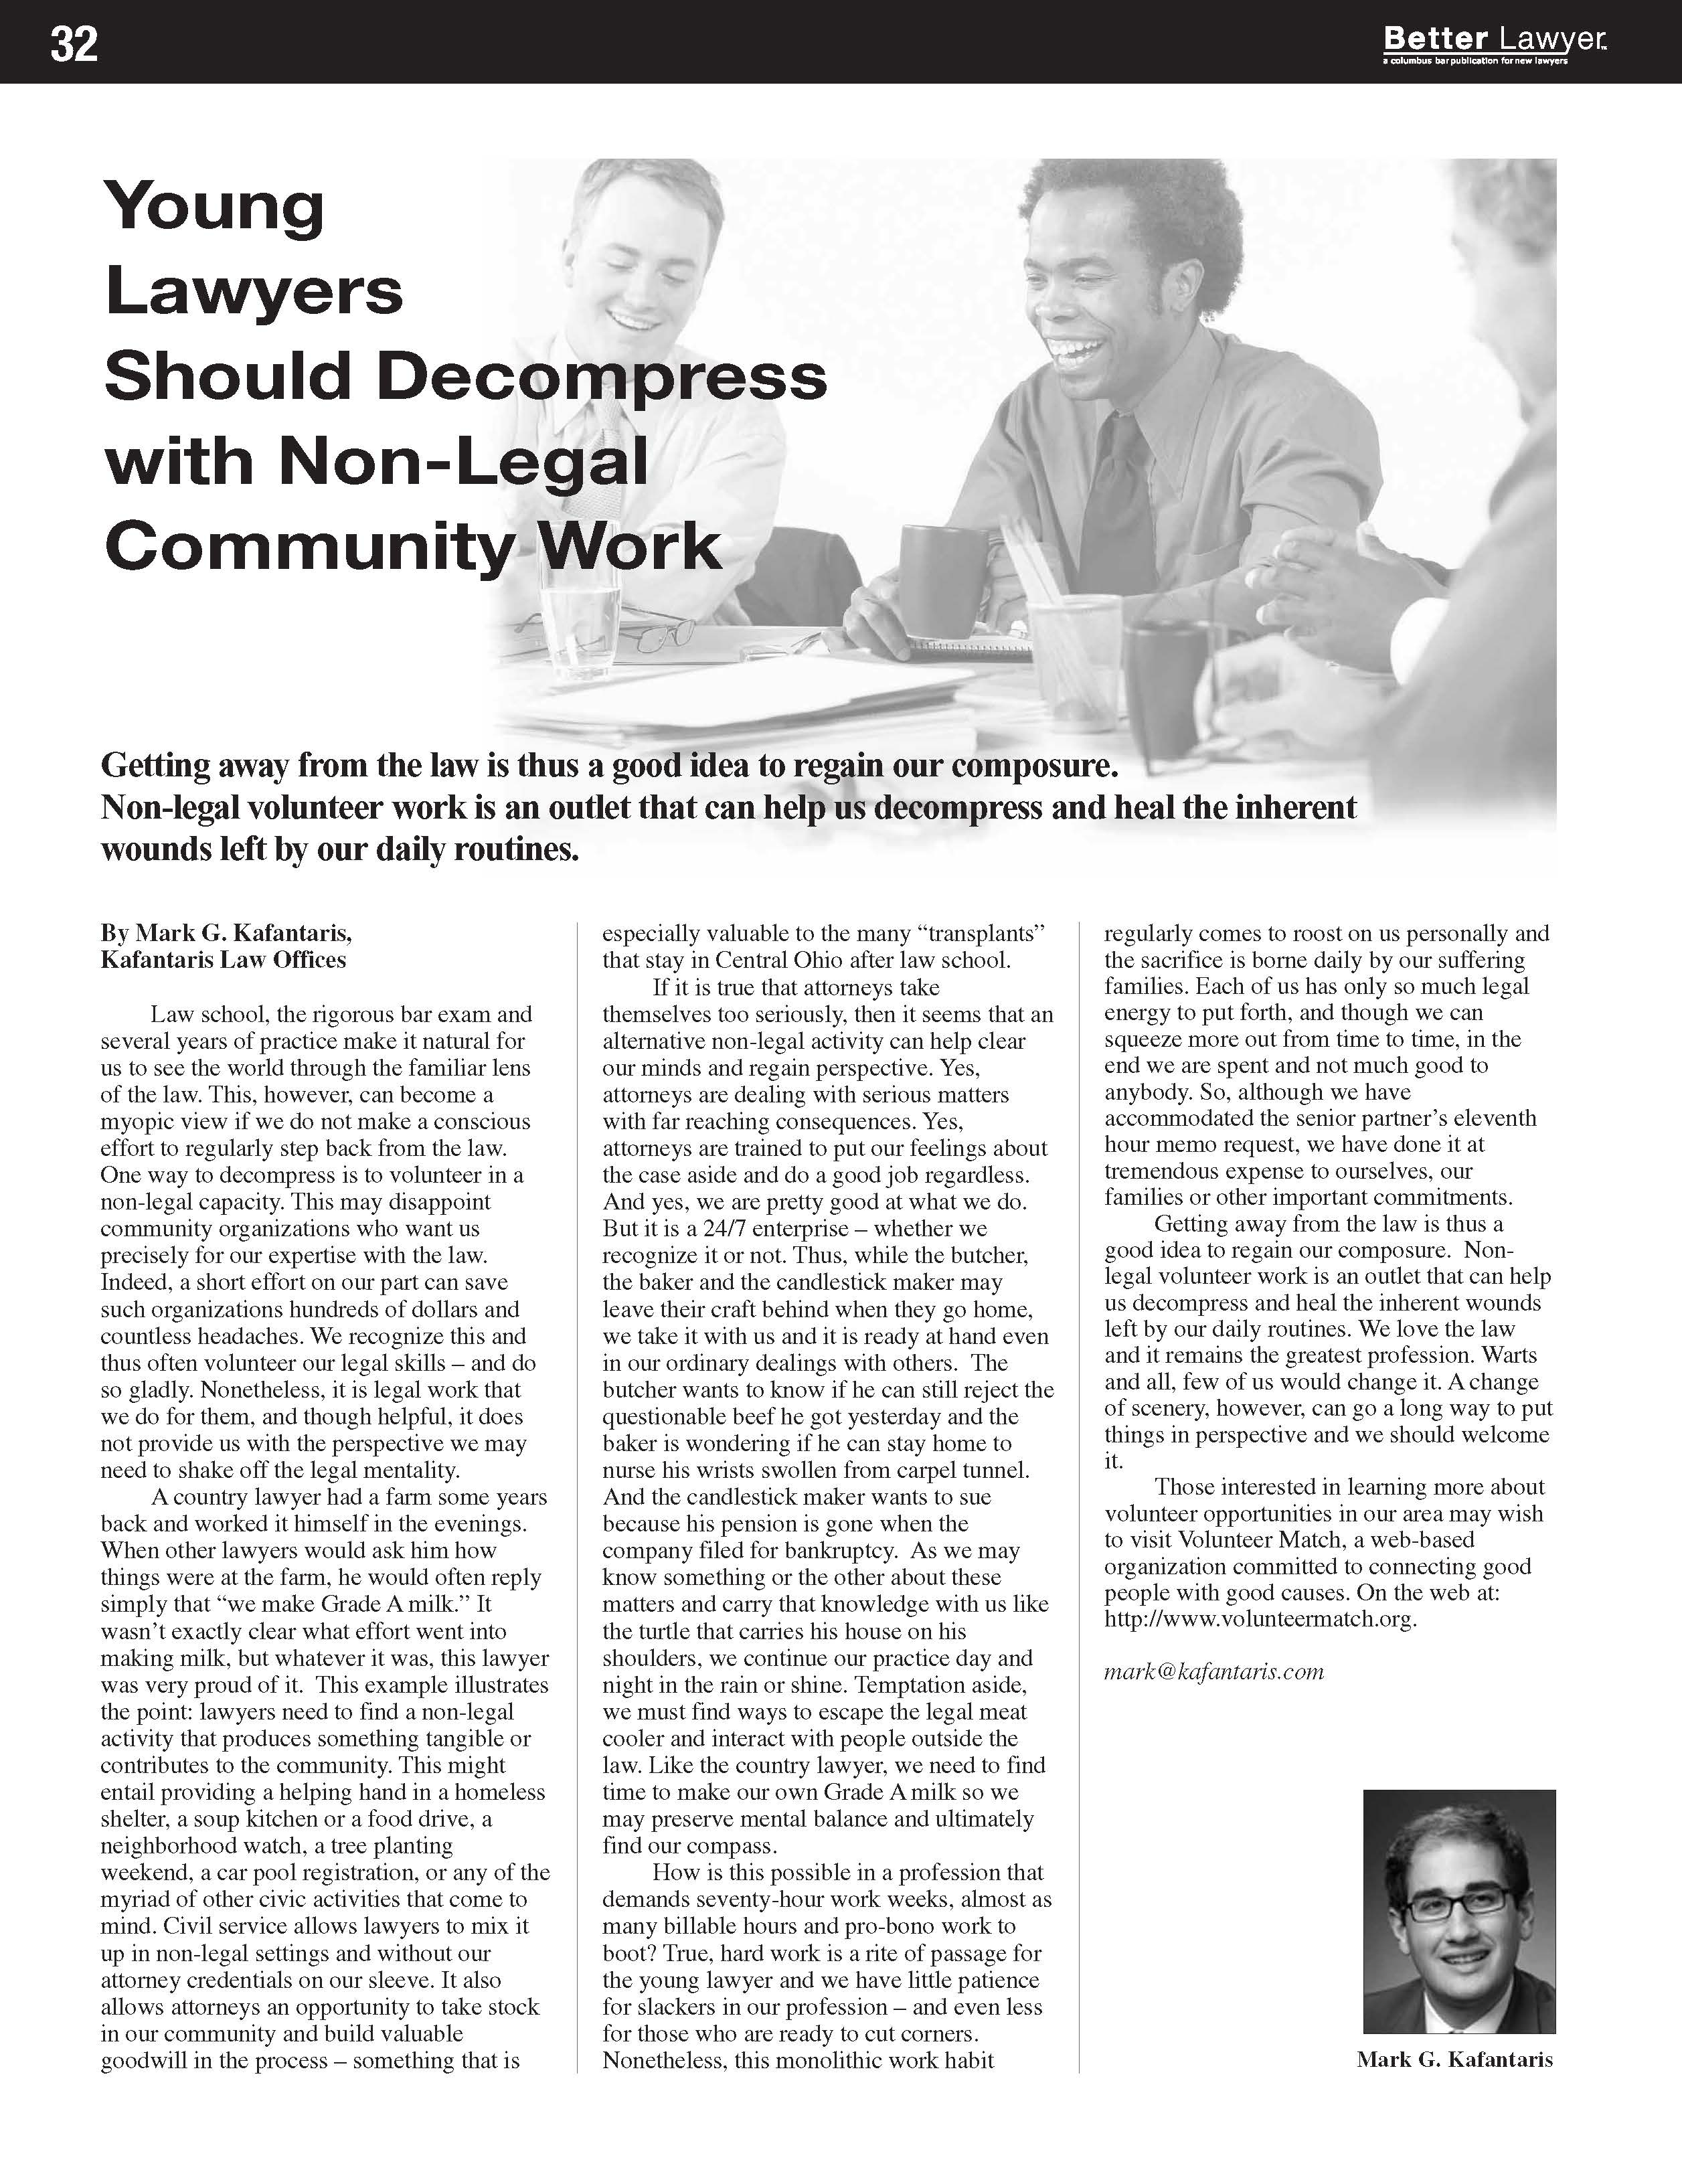 Young Lawyers Should Decompress with Non Legal Community Work